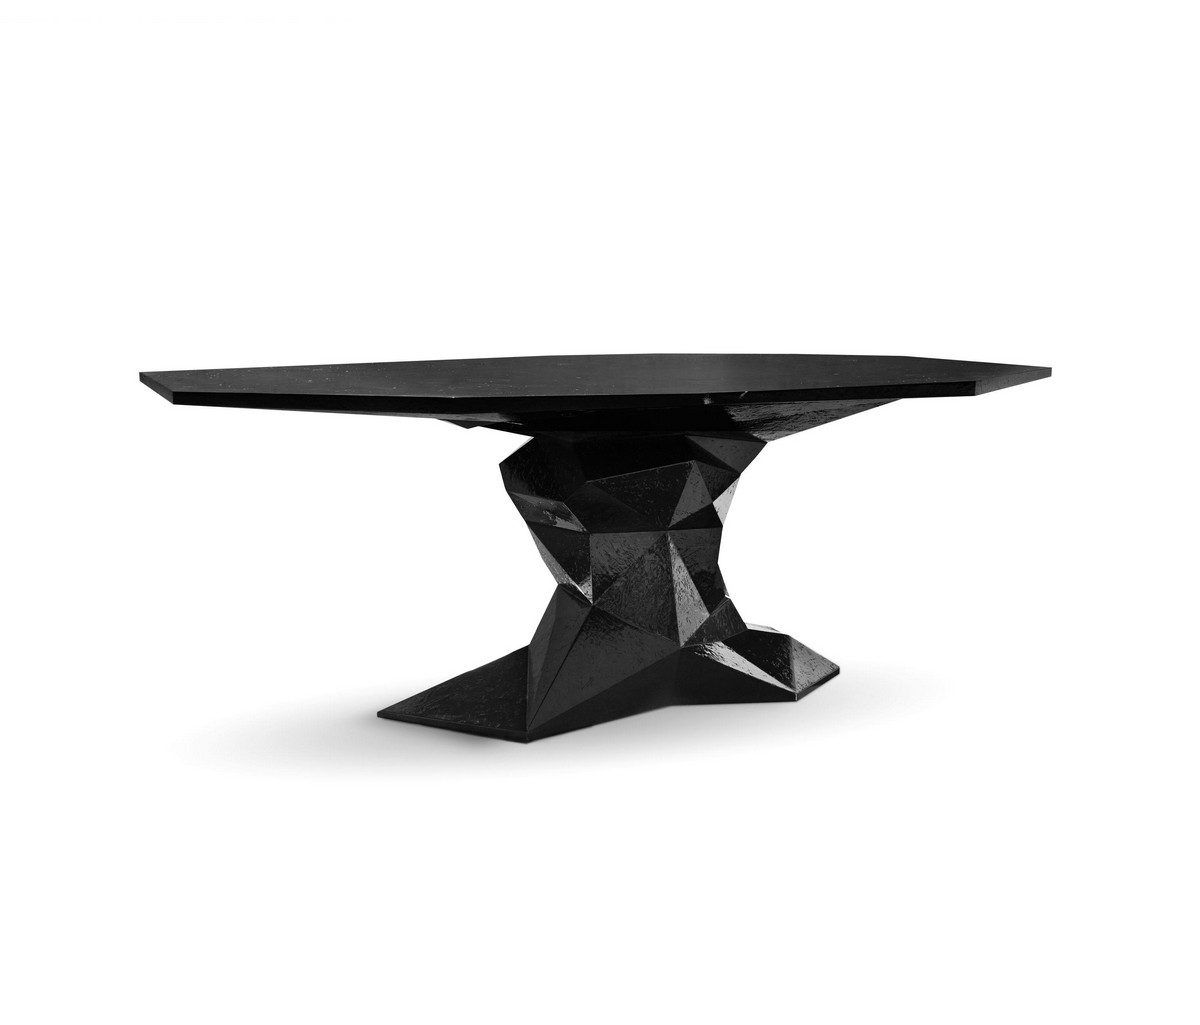 Top Bespoke Dining Tables (Part II) bespoke dining tables Top Bespoke Dining Tables (Part II) bonsai2